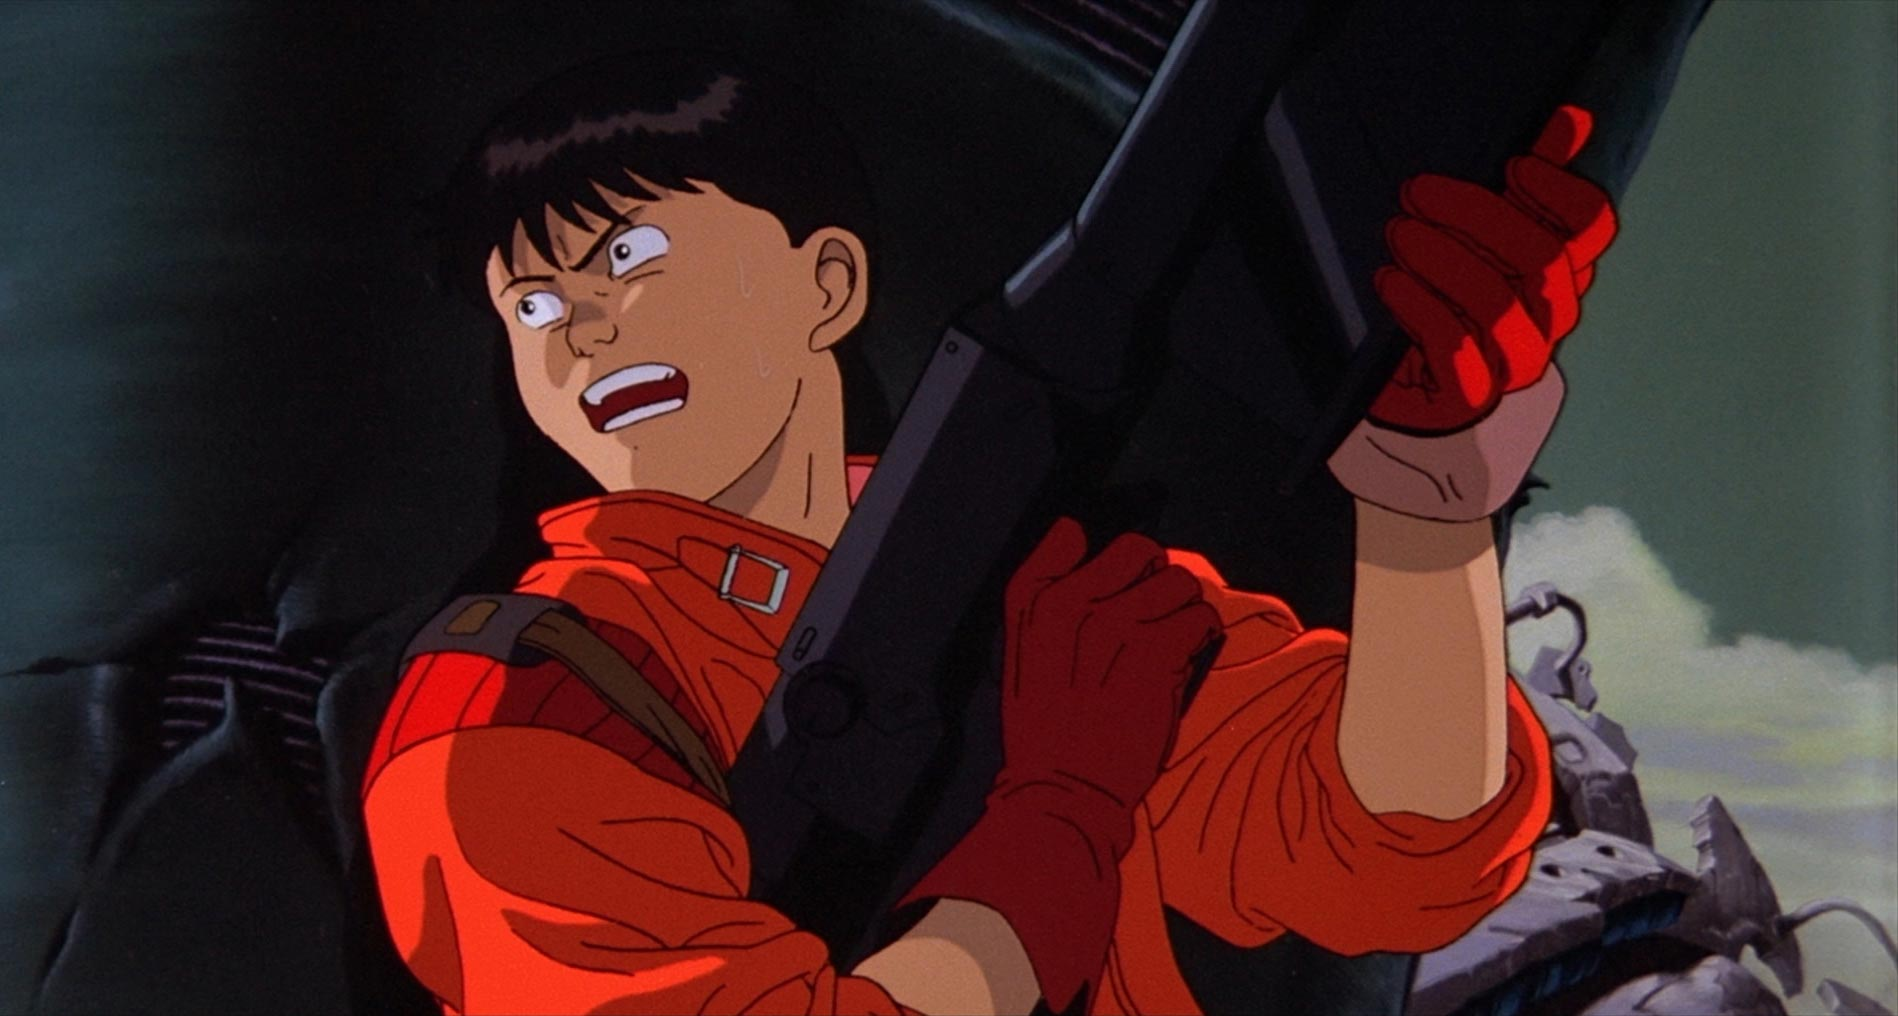 The 15 Best Cult Anime Movies of All Time